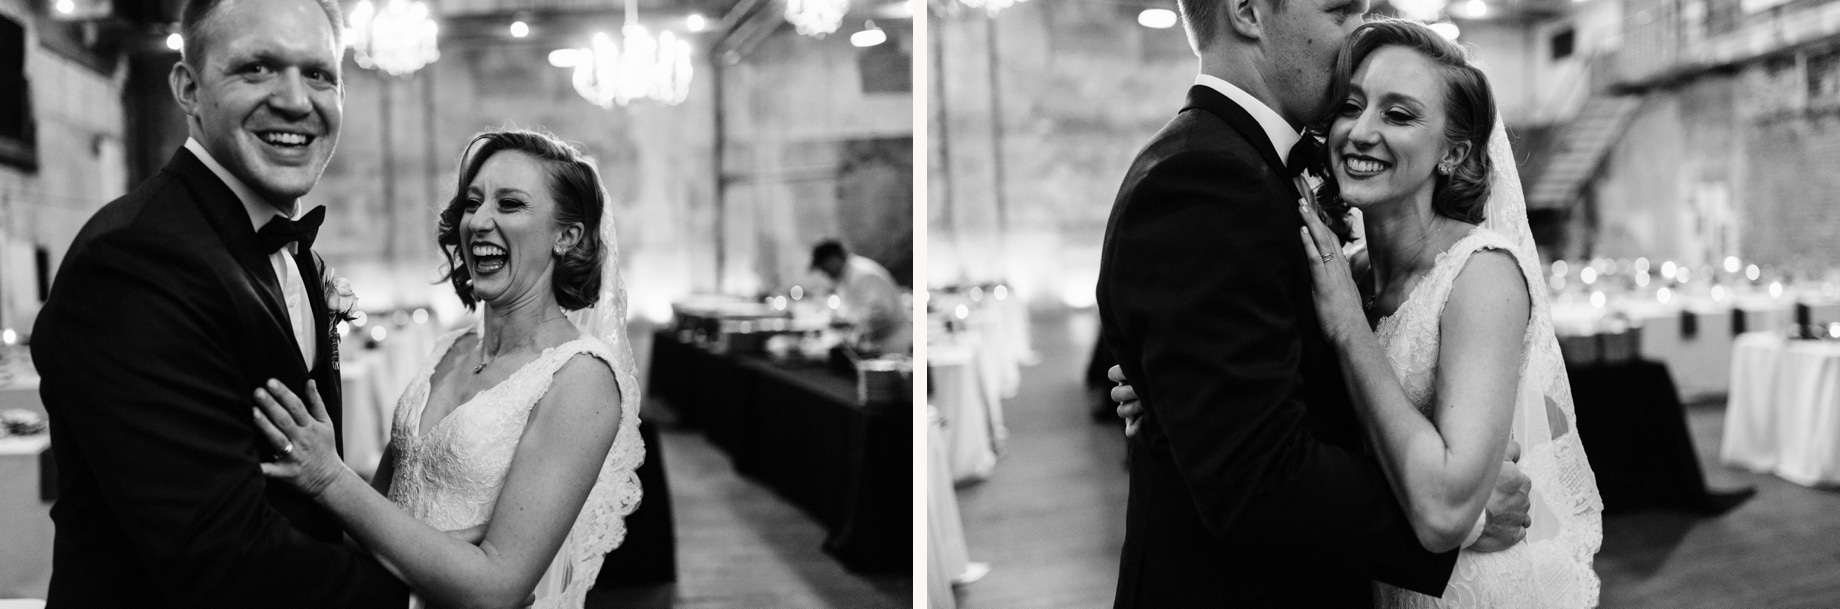 candid photos of a bride and groom after their wedding ceremony at the Jam Handy